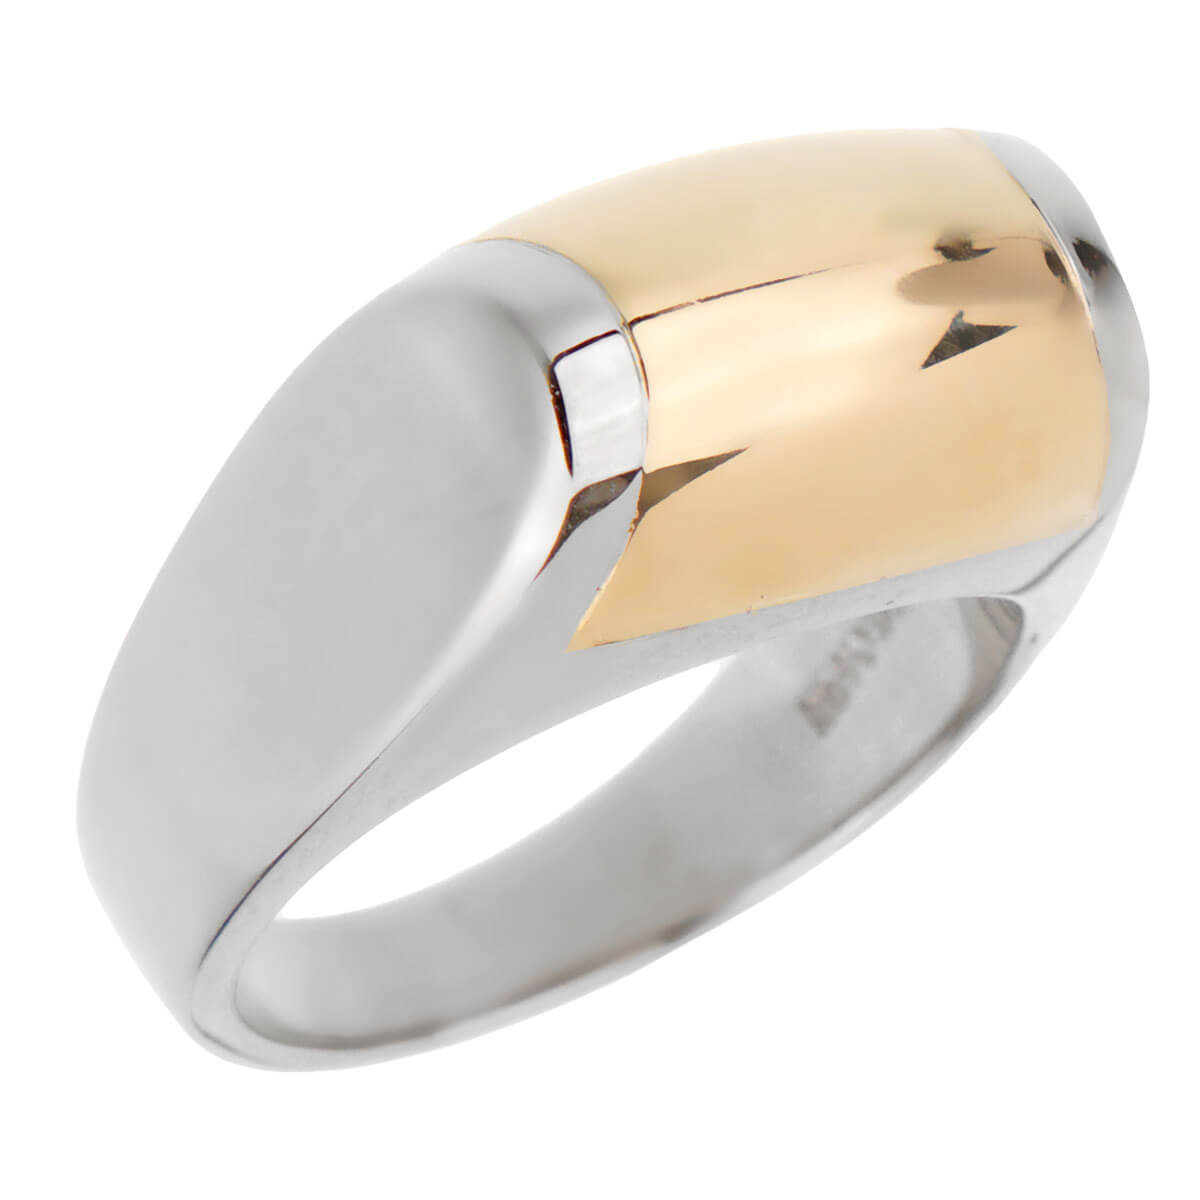 Bulgari Two Tone Gold Cocktail Ring